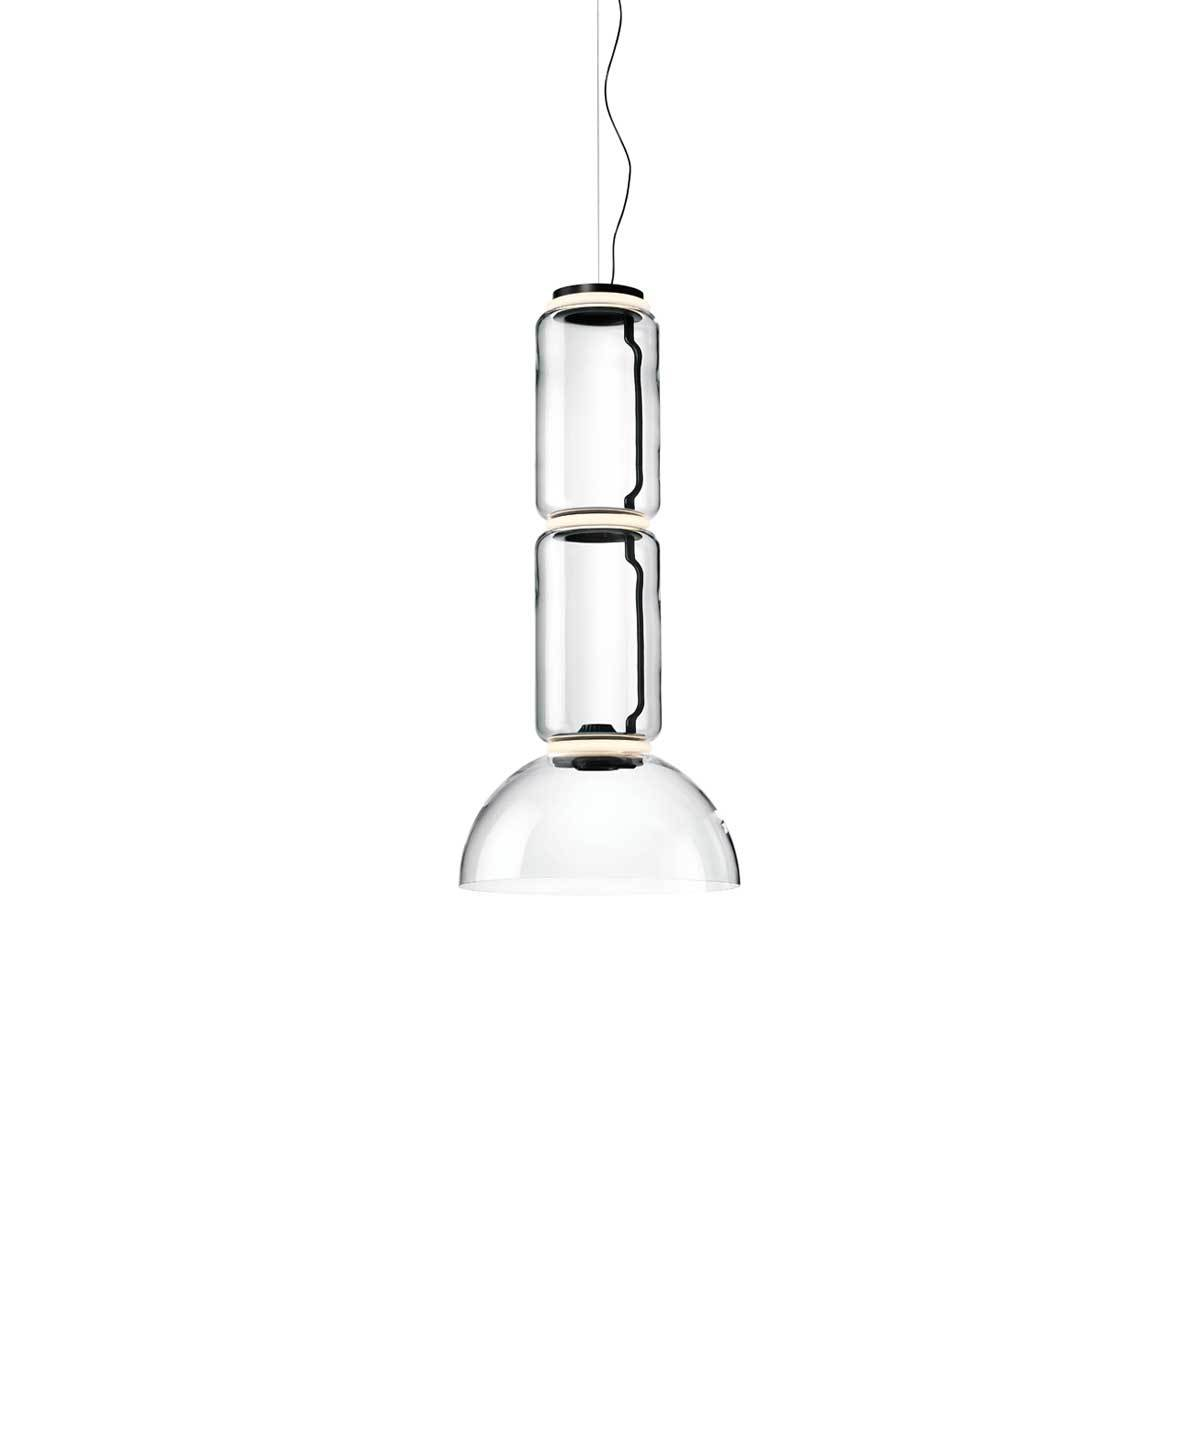 Noctambule Pendant Lamp with Bowl Shade